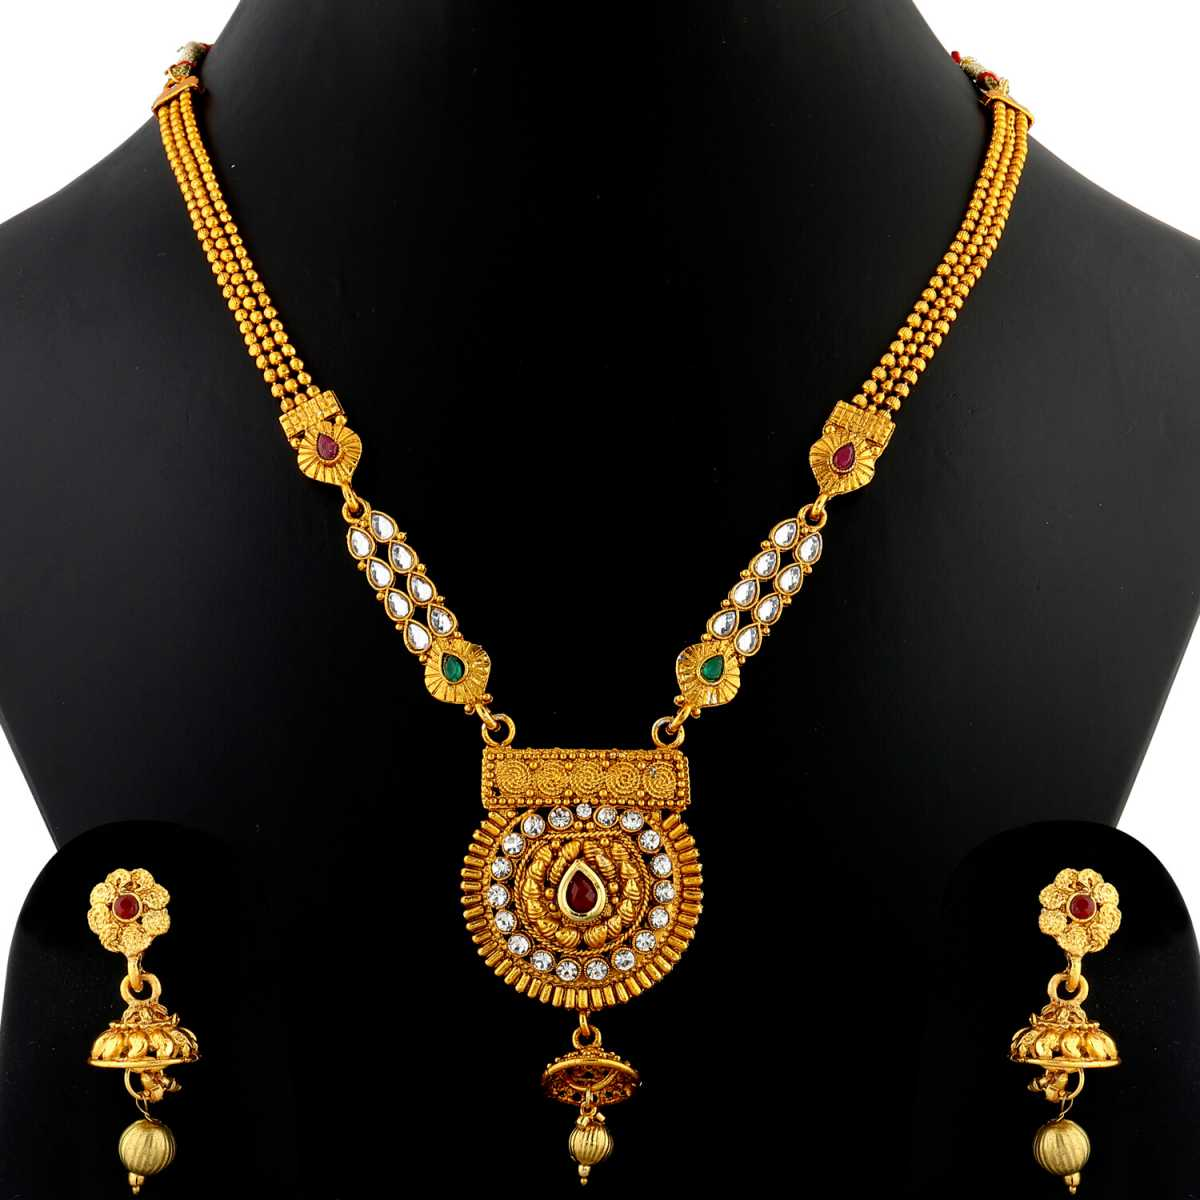 Silver Shine Exclusive Gold Plated Traditional  Three Line Chain & Round Shape Stone Studded Kundan Long Necklace Set  Jewellery  For Women And Girls